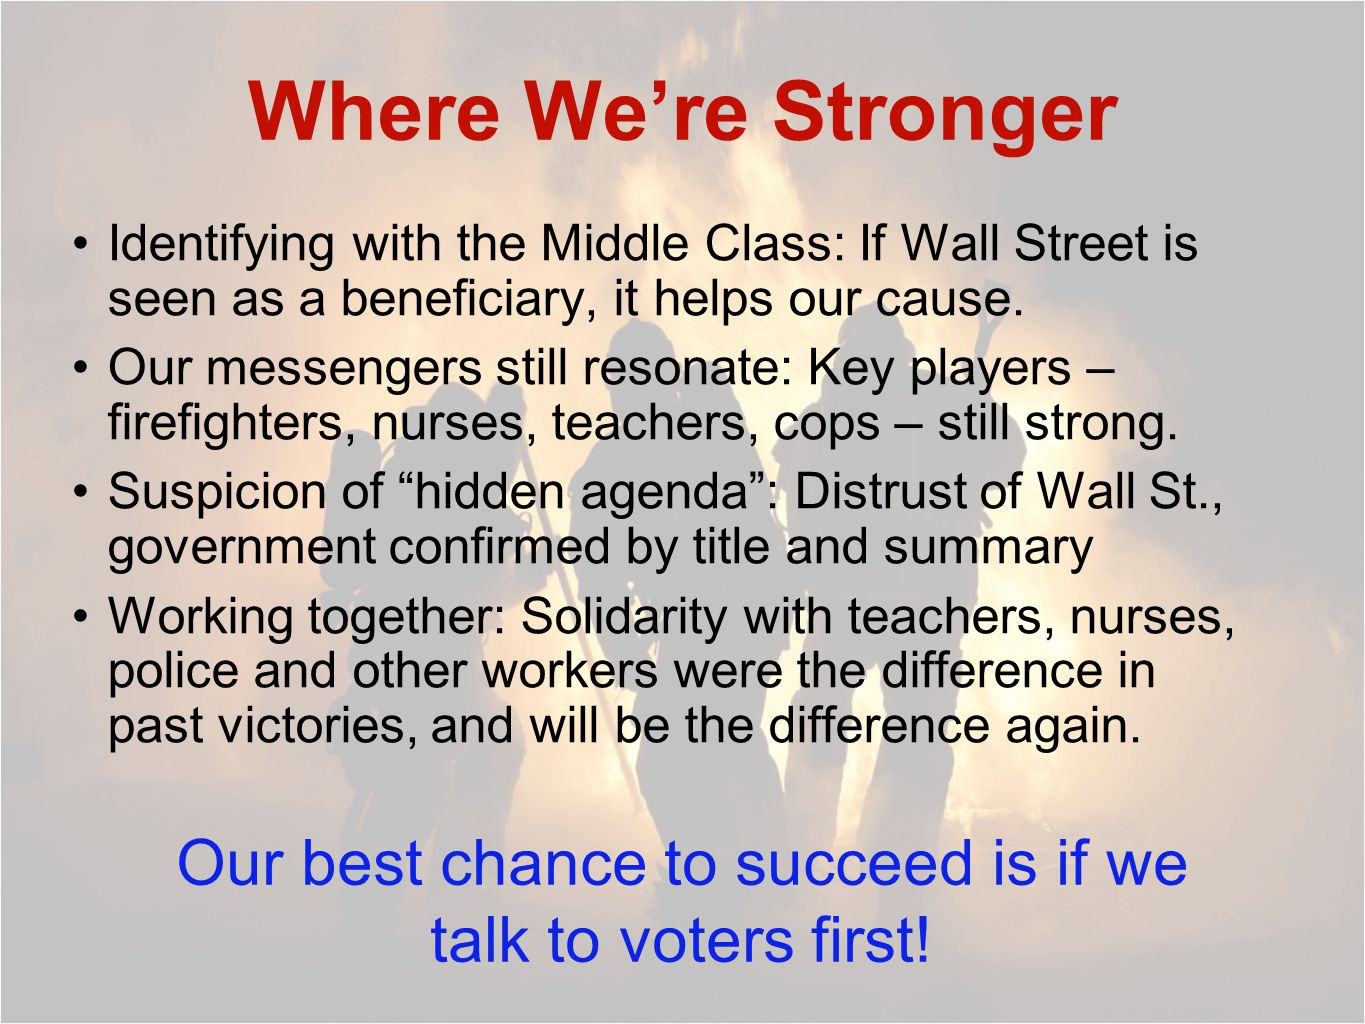 Where We're Stronger Identifying with the Middle Class: If Wall Street is seen as a beneficiary, it helps our cause.